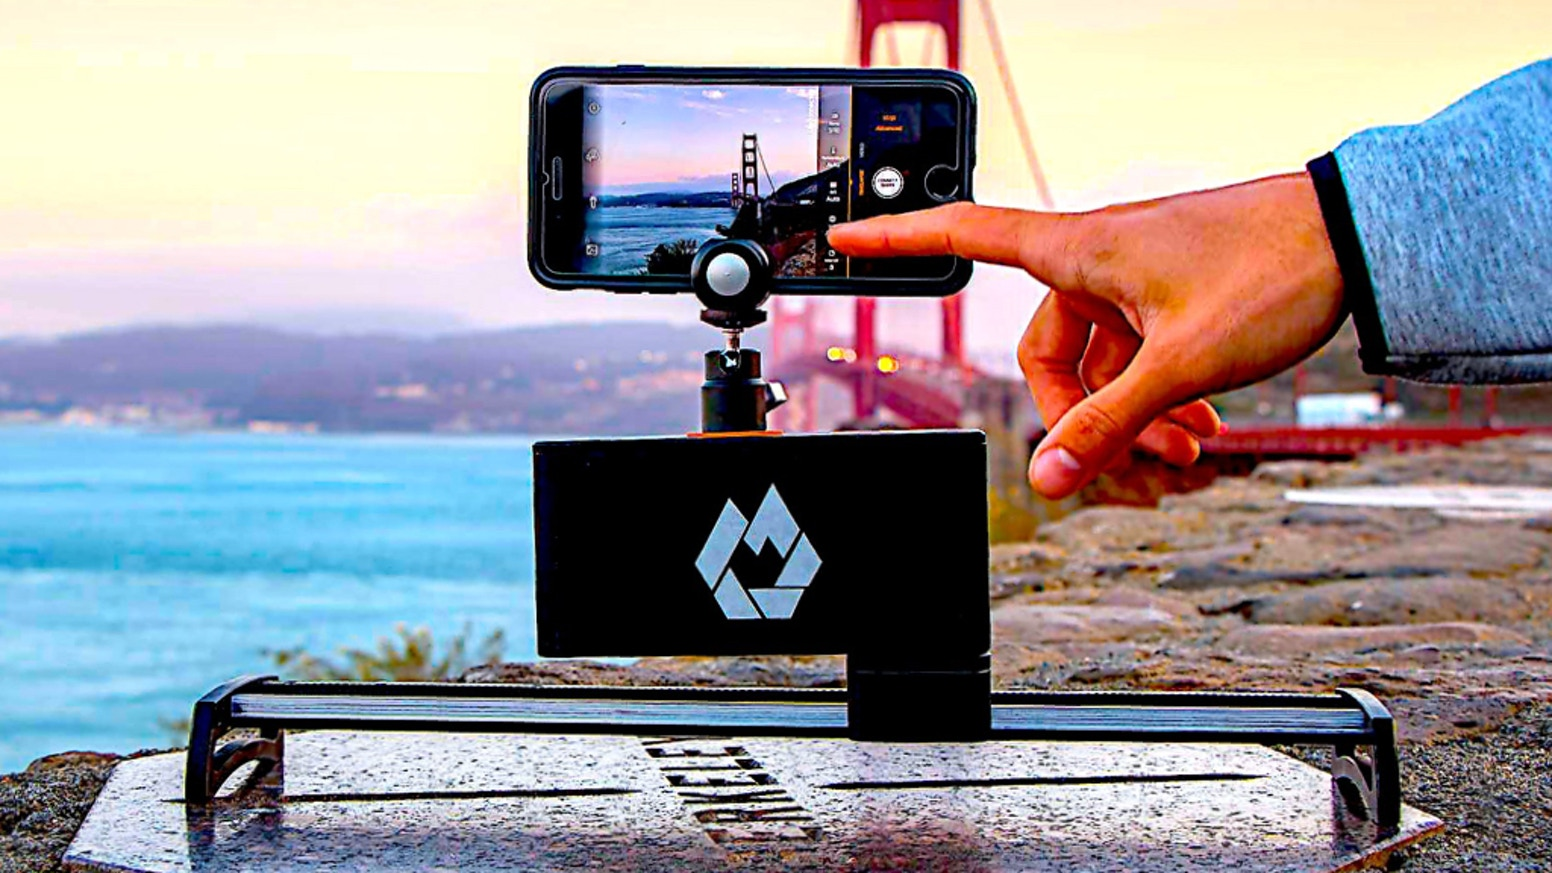 Add Life To Every Moment With The World's First Fully Automated Digital Slider For Your Smartphone, GoPro & Mirrorless Camera.